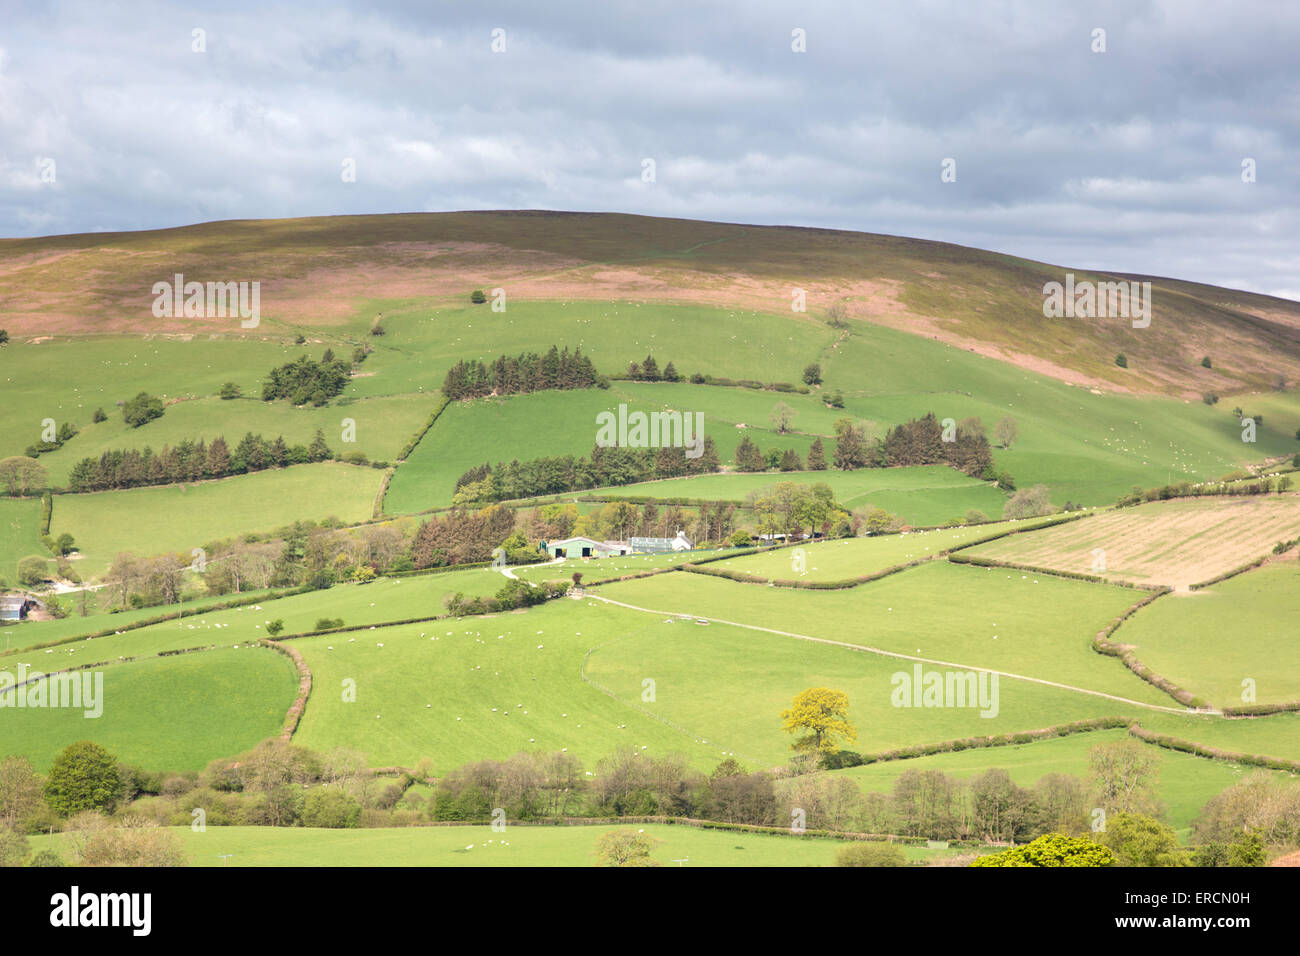 Welsh border country near Builth Wells, Powys, Mid Wales, UK - Stock Image